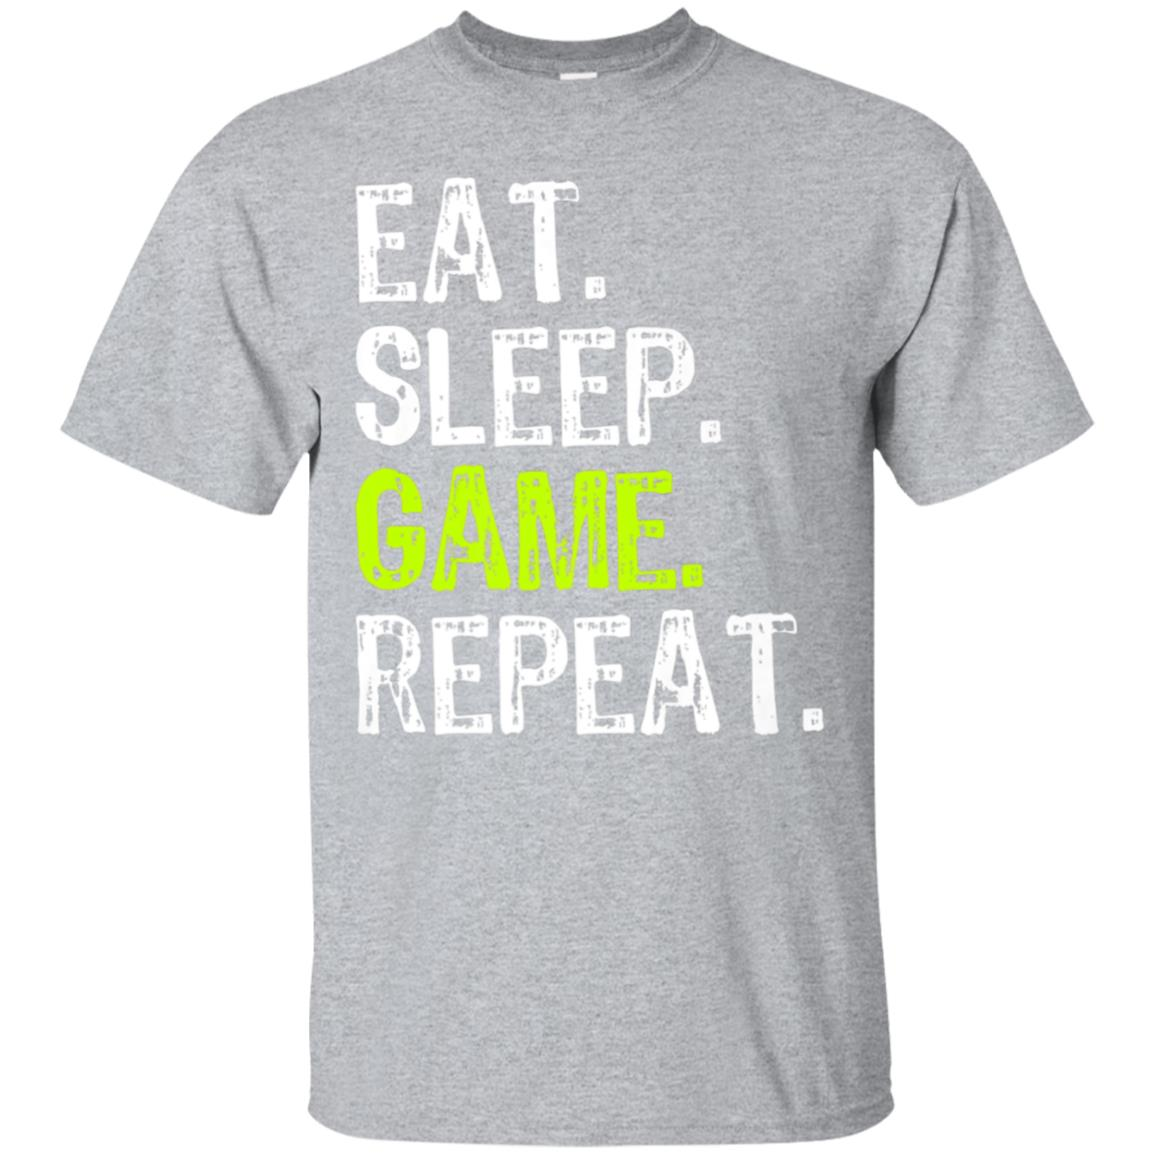 404ccd378c0 Awesome eat sleep game repeat t shirt - 99promocode